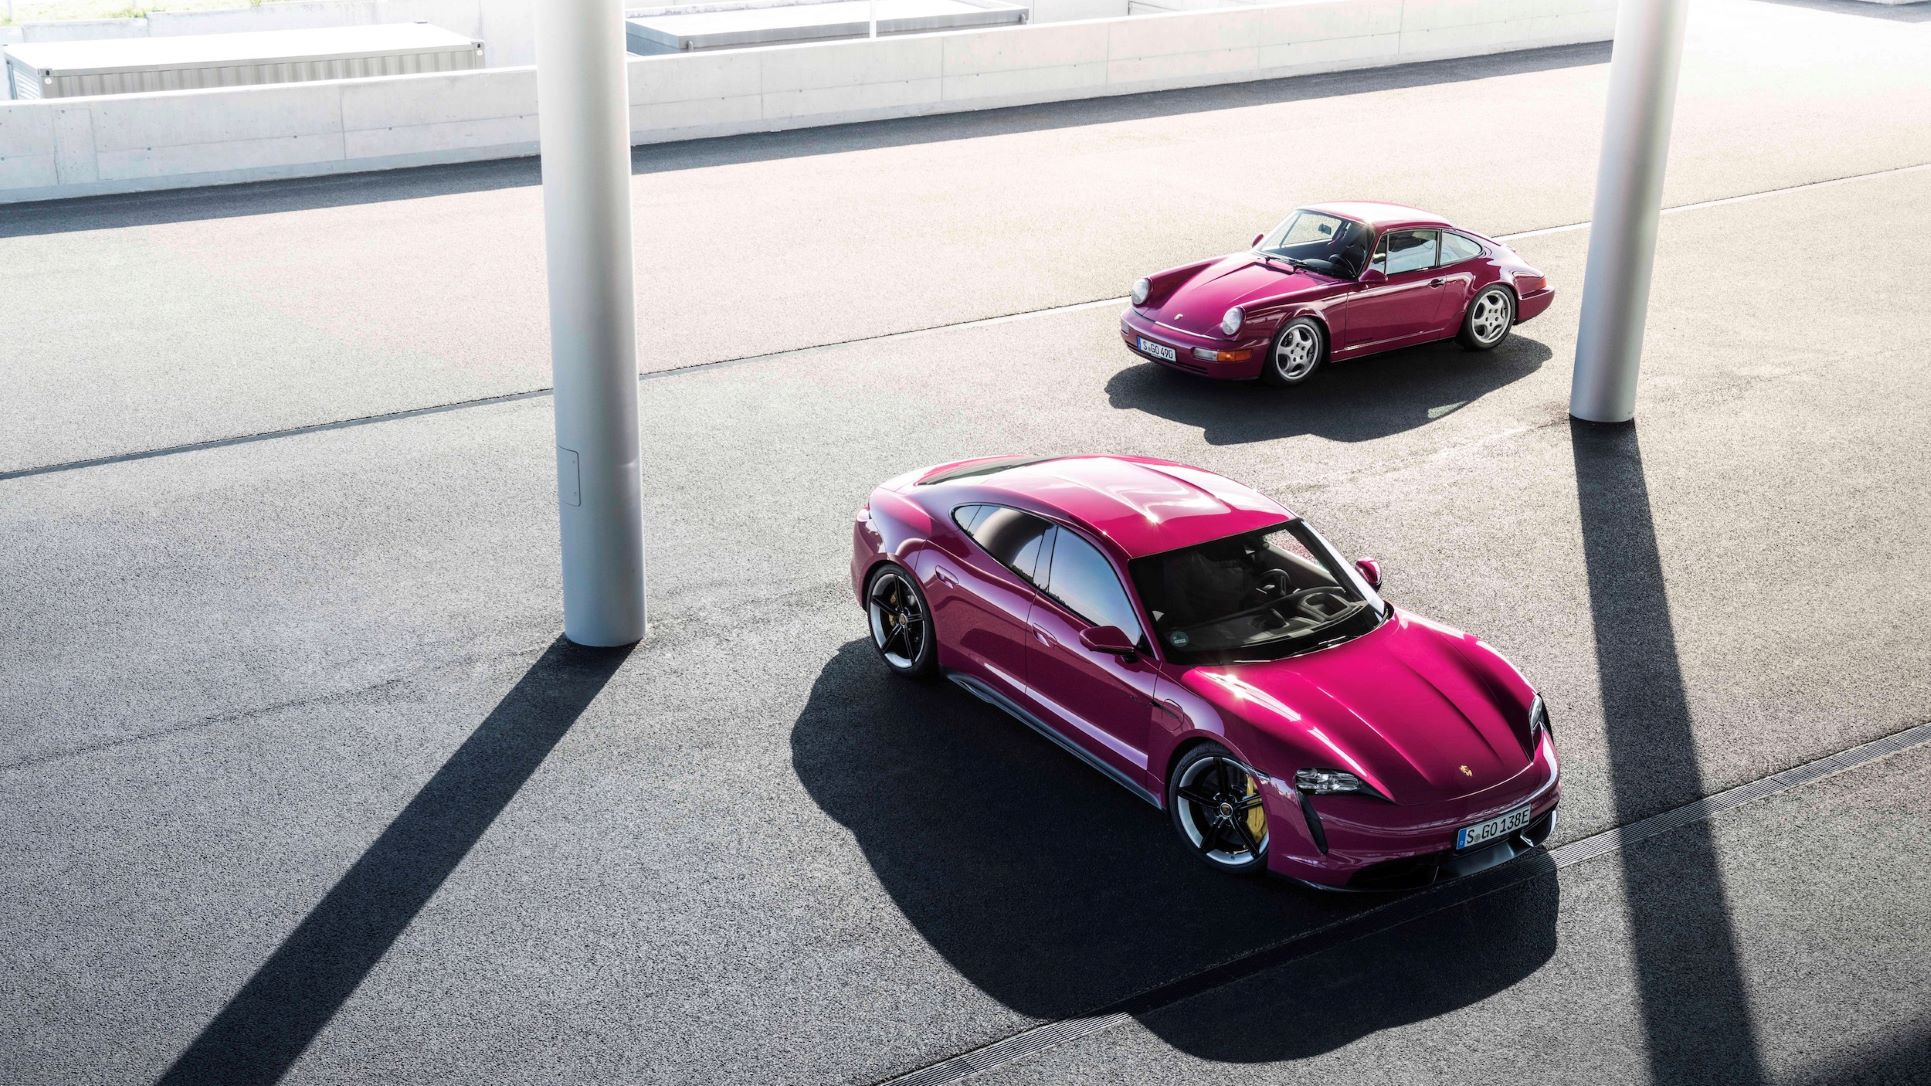 Porsche Taycan and 911 in Rubystone Red